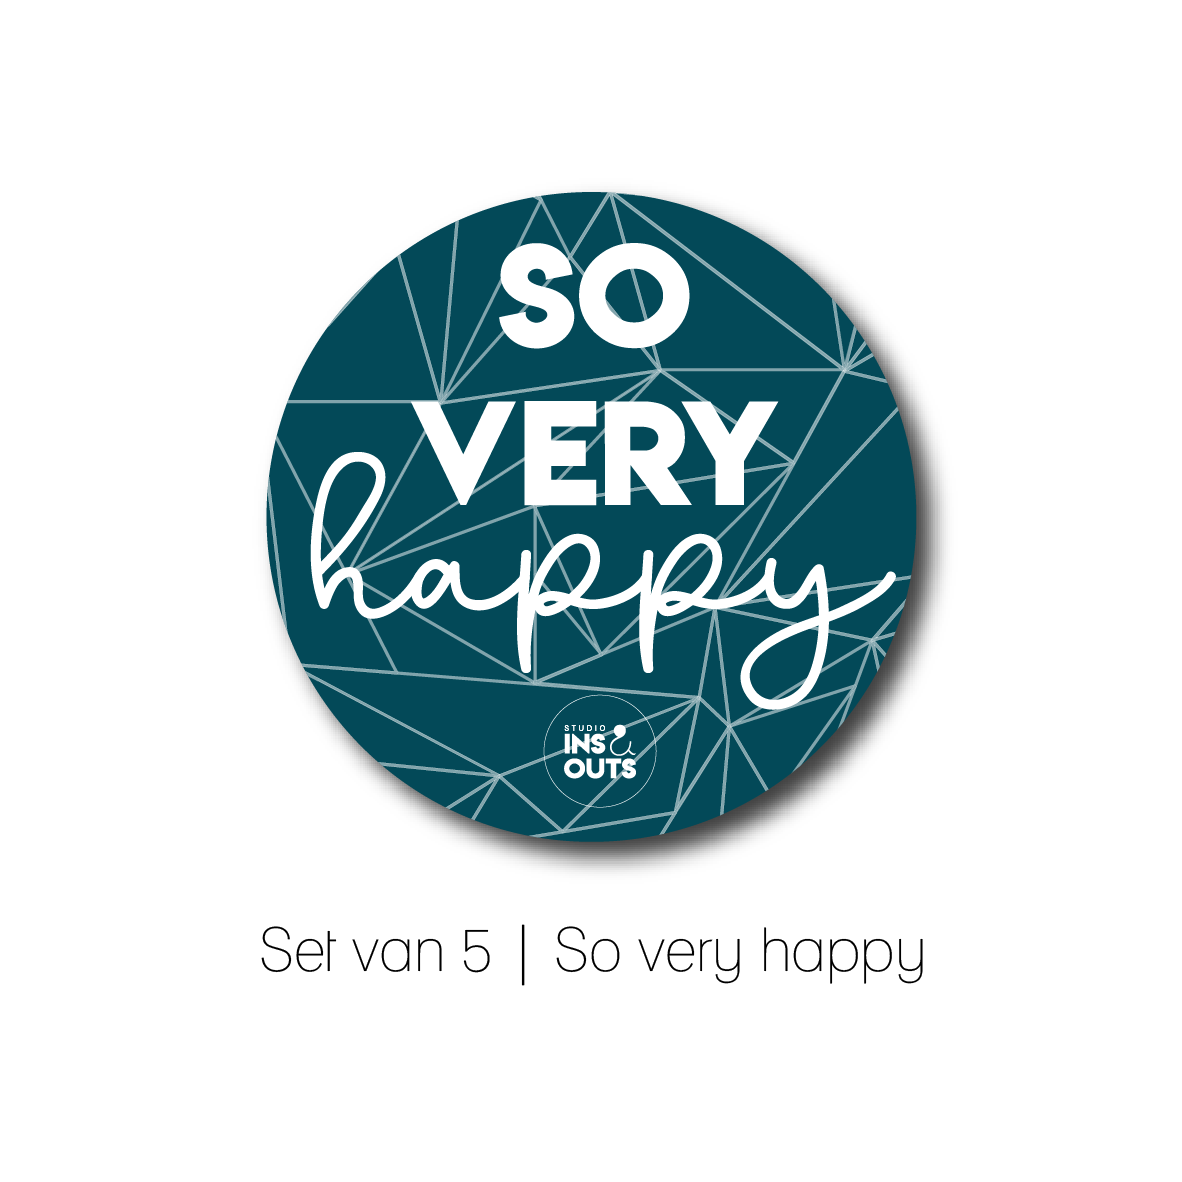 Set van 5 cadeau stickers | So very happy